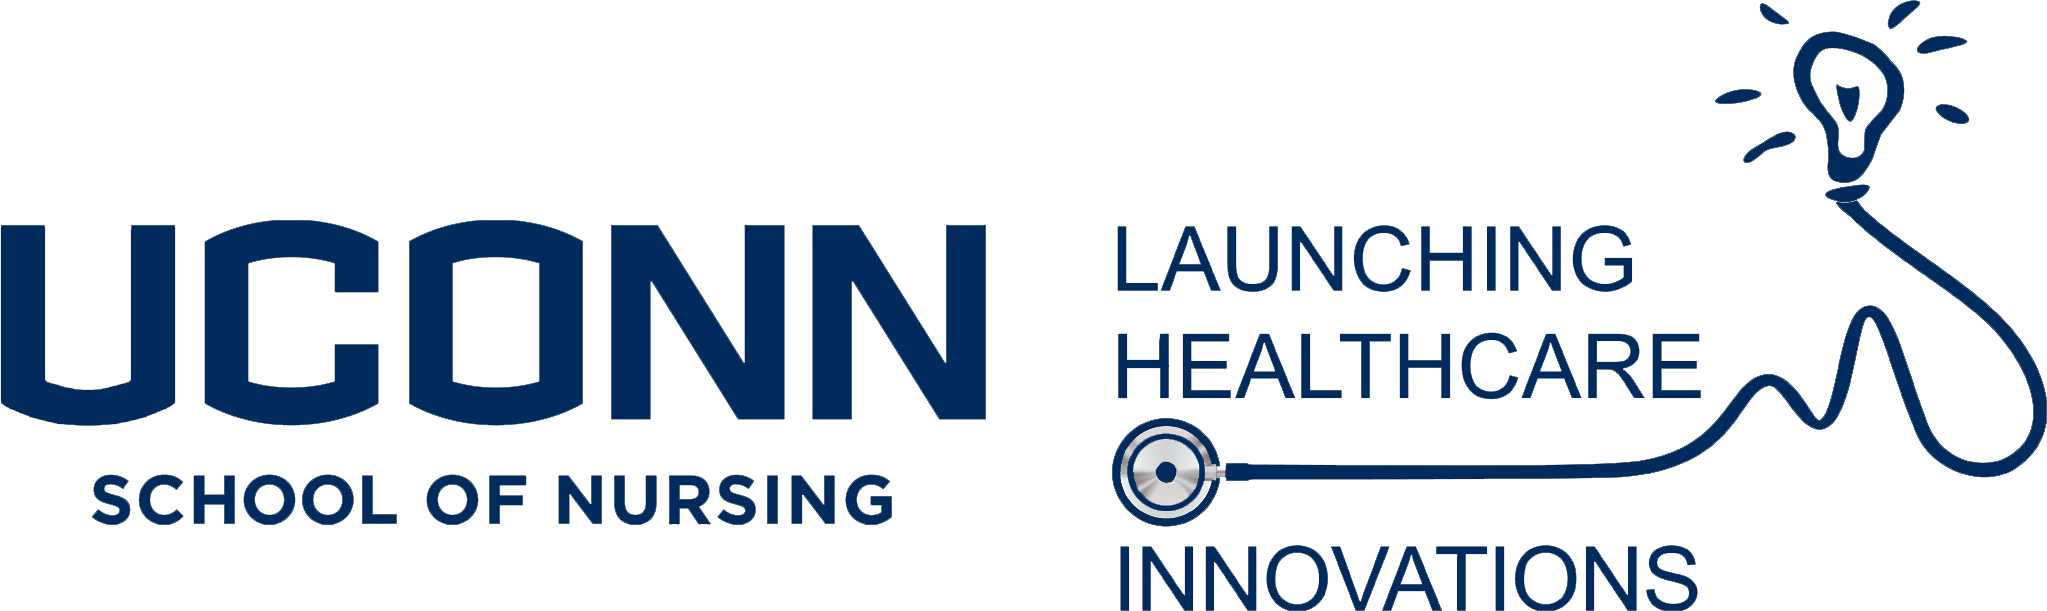 Healthcare Innovations logo blue